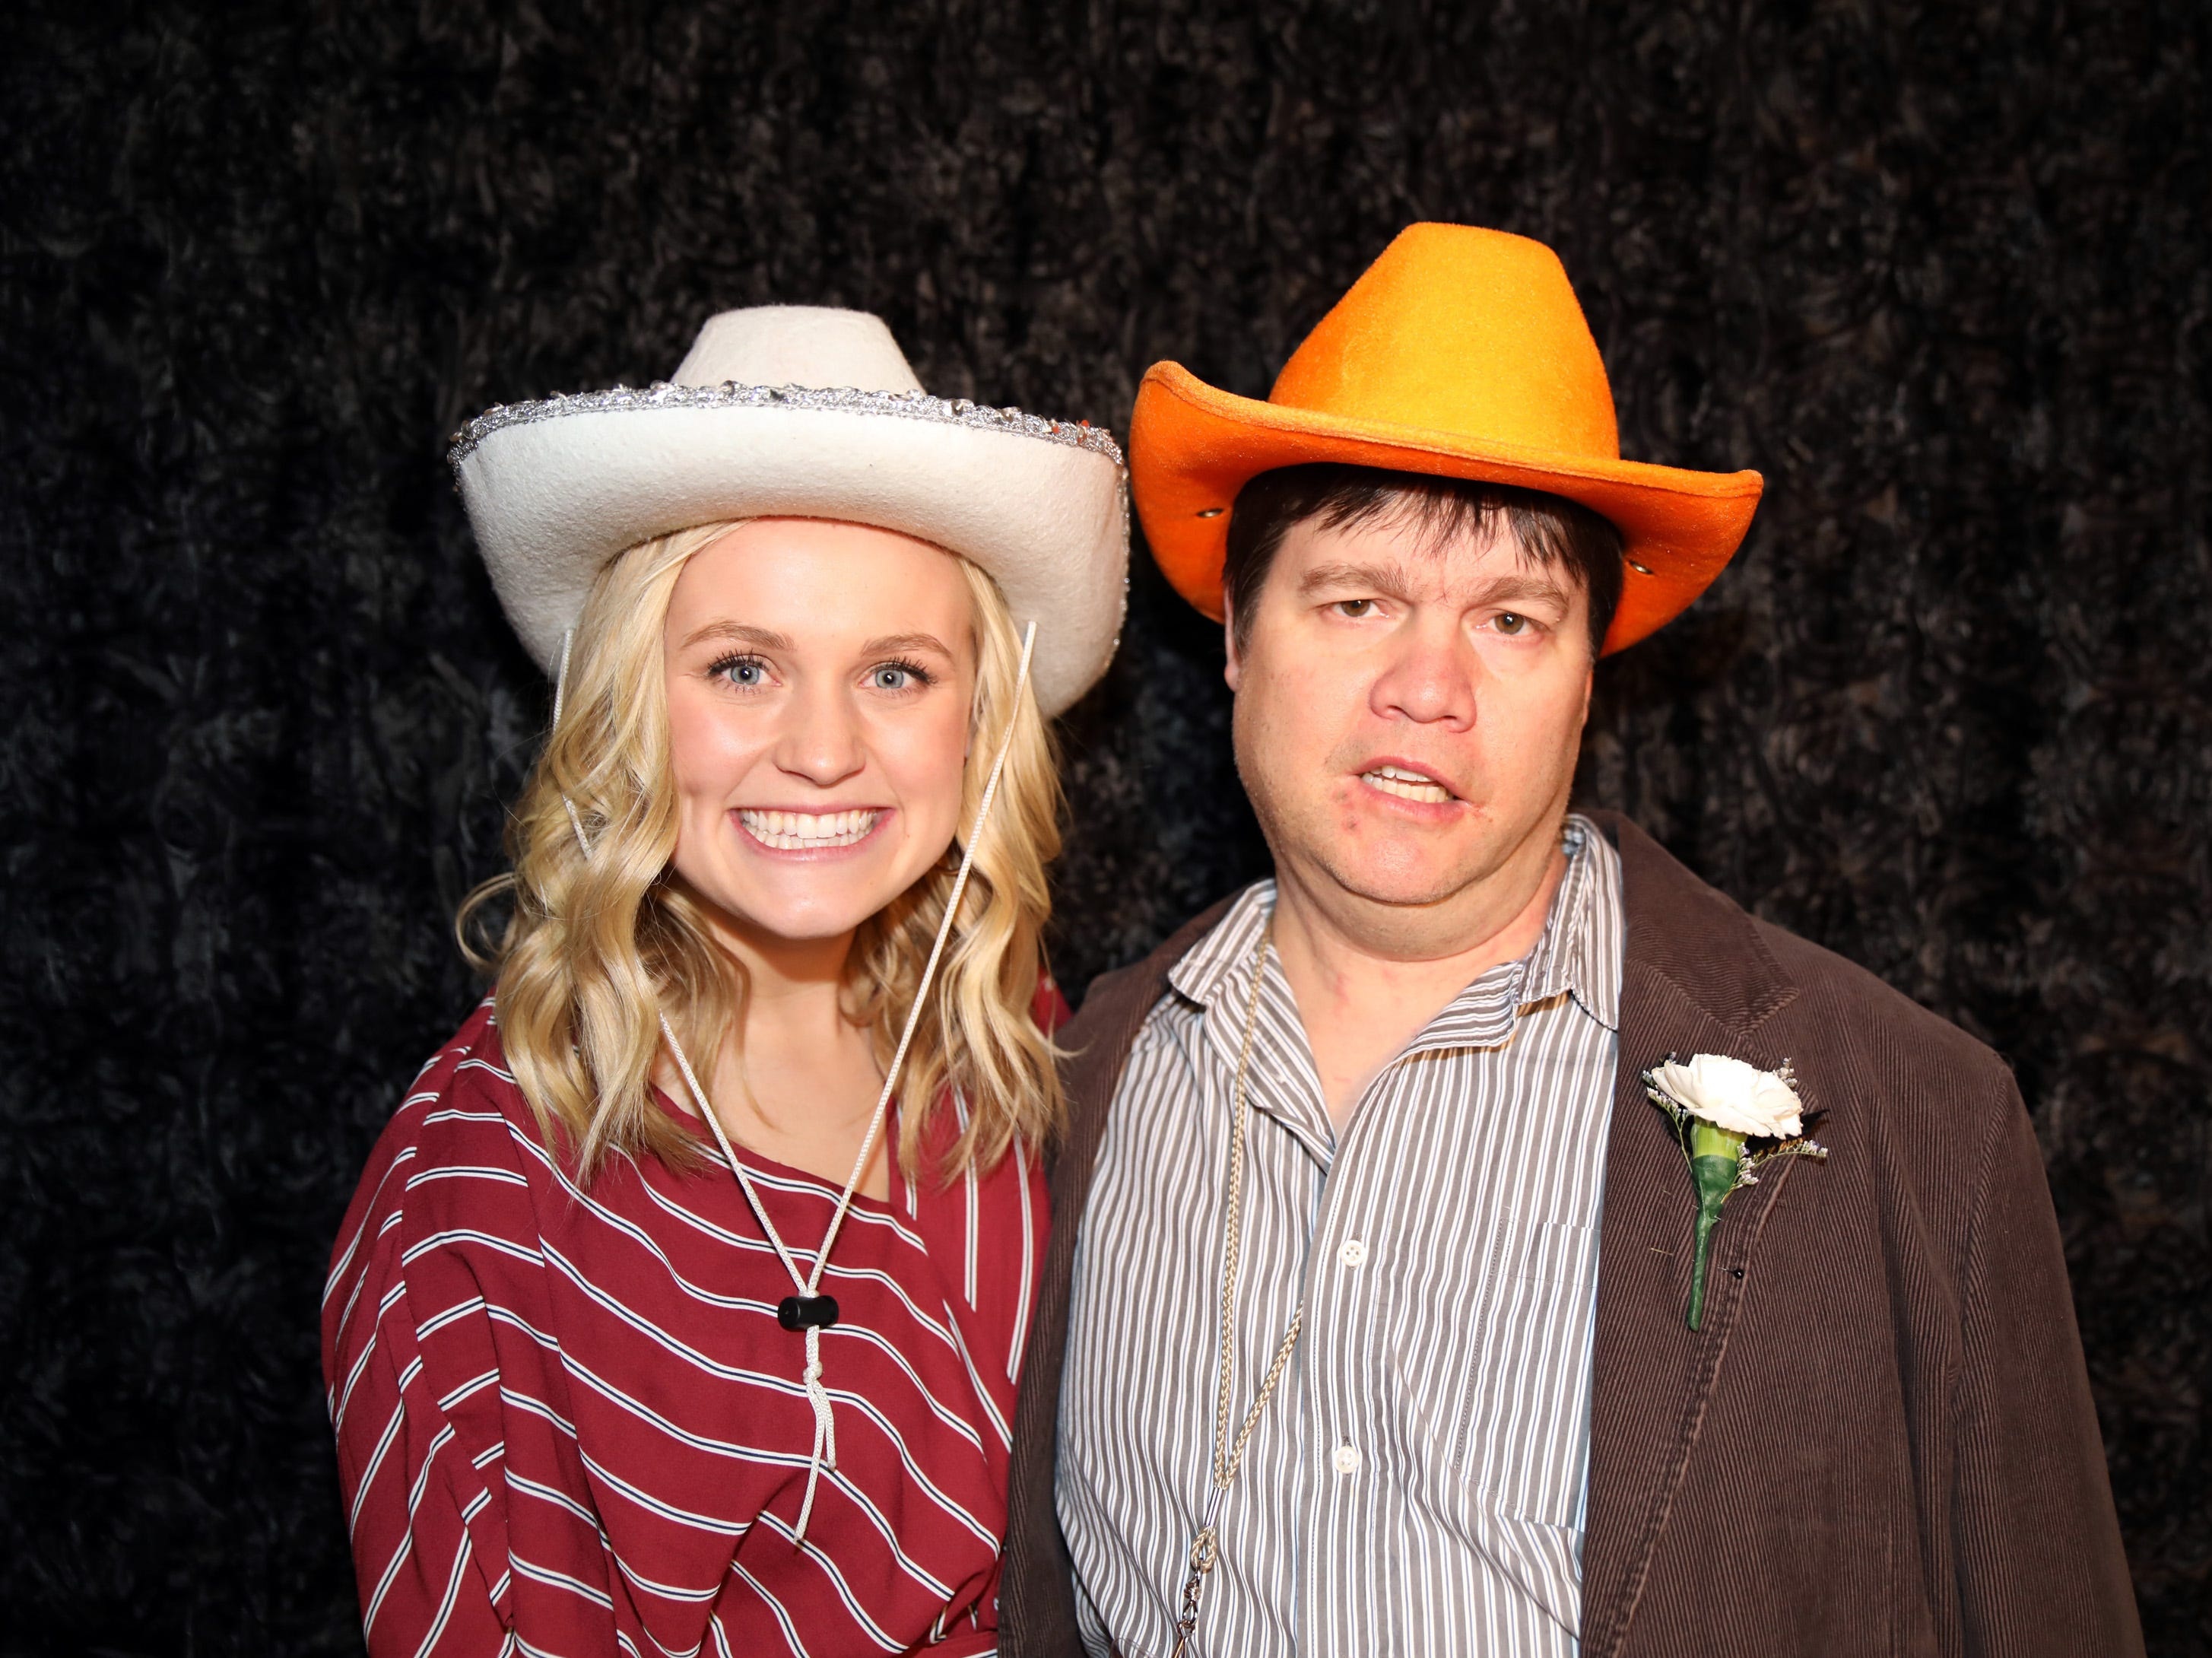 Haddie Carlson and Pat Myer stop by the photo booth during the Night to Shine event at Prairie Ridge Church in Ankeny on Friday, Feb. 8, 2019. Sponsored by the Tim Tebow Foundation, the event for adults with special needs features a prom-like atmosphere with dancing, limo rides, food and more.